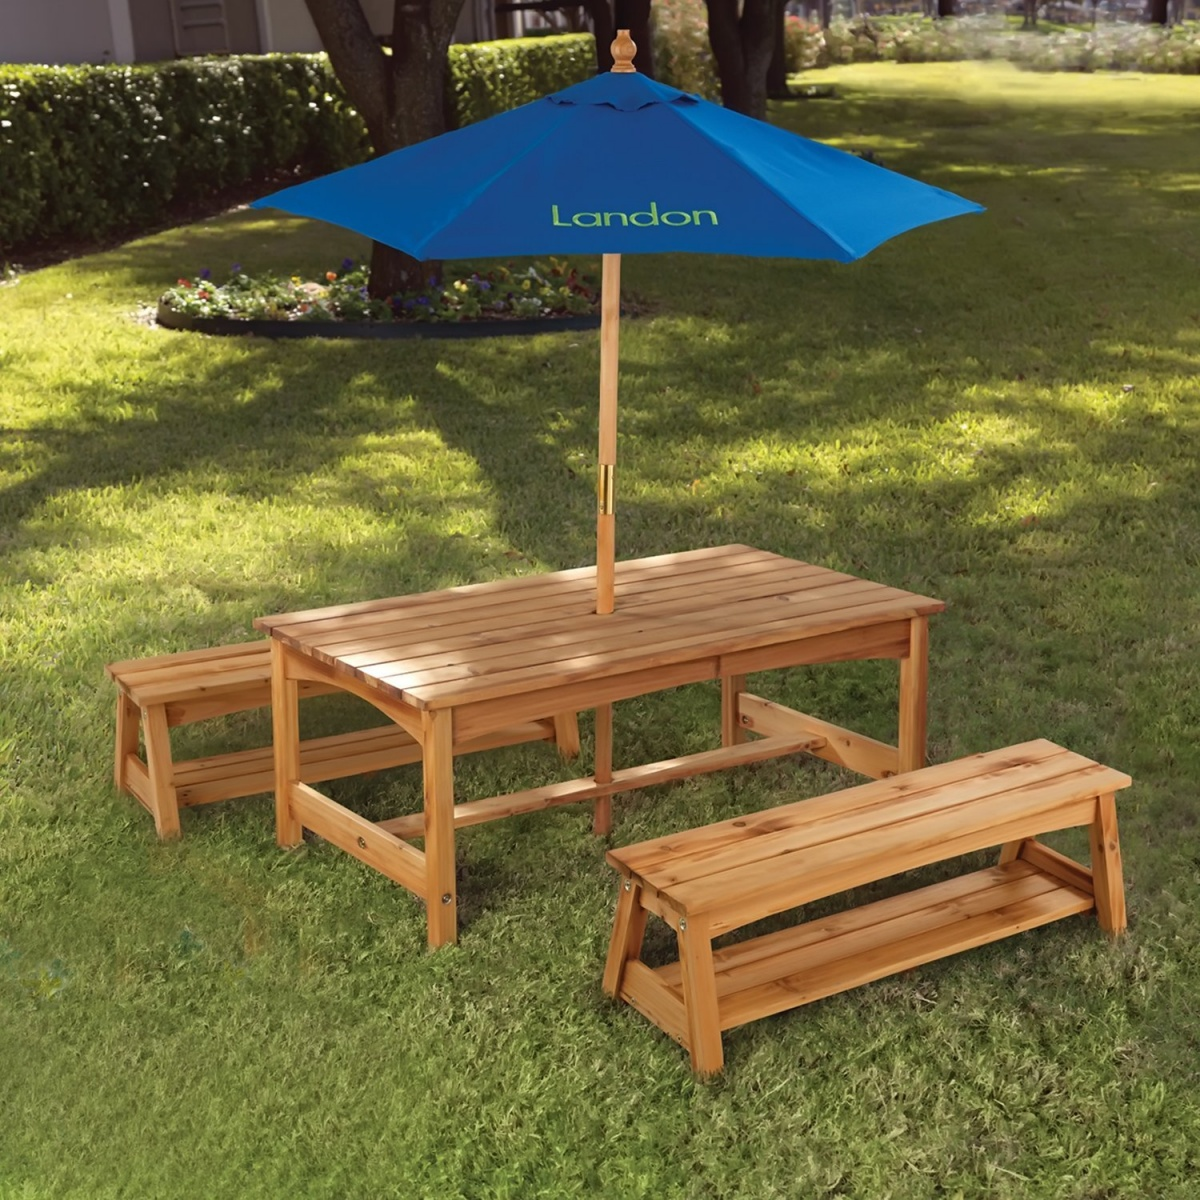 Best Image of: Cute Kids Wood Picnic Table kids wooden garden furniture